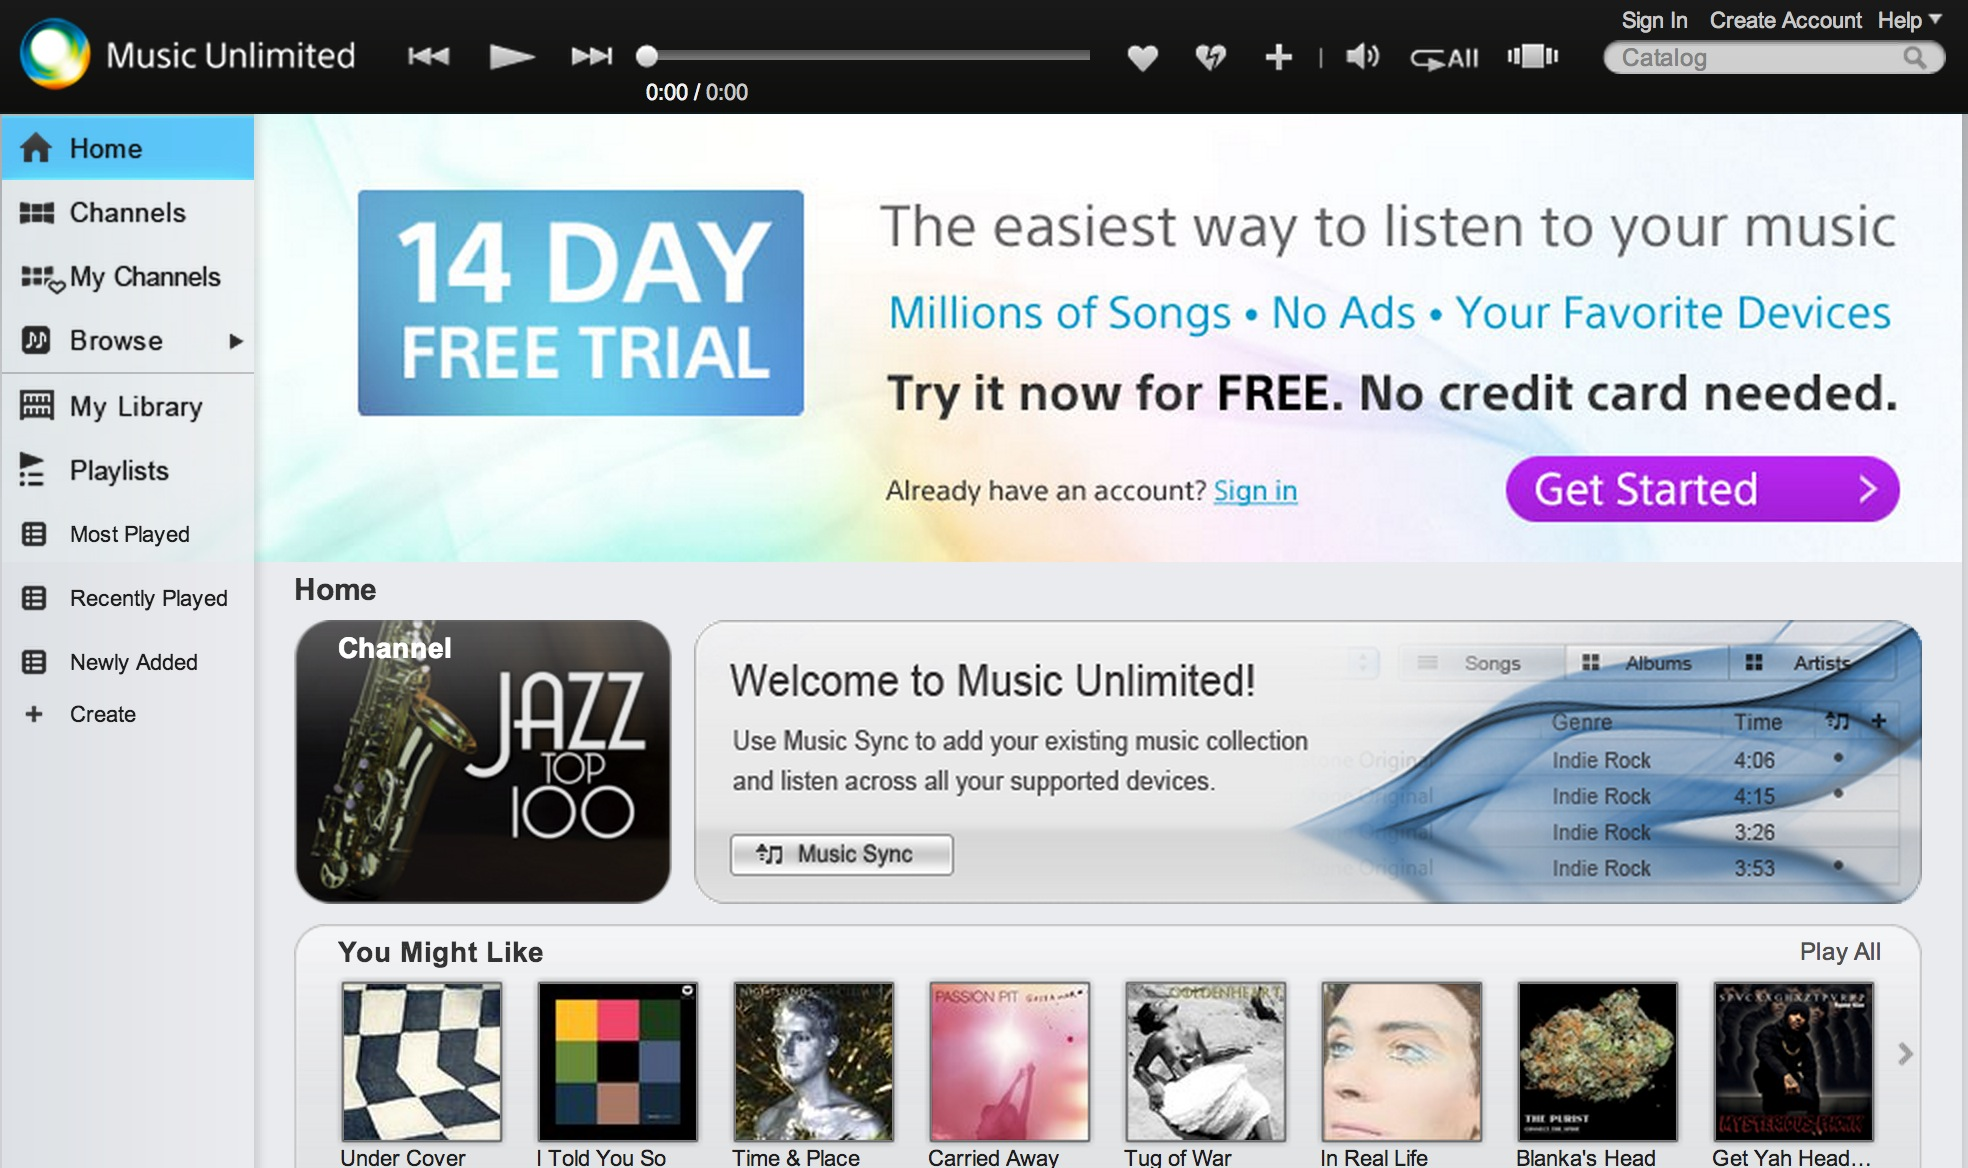 Sony Upgrades Music Unlimited to 320Kbps Streaming!